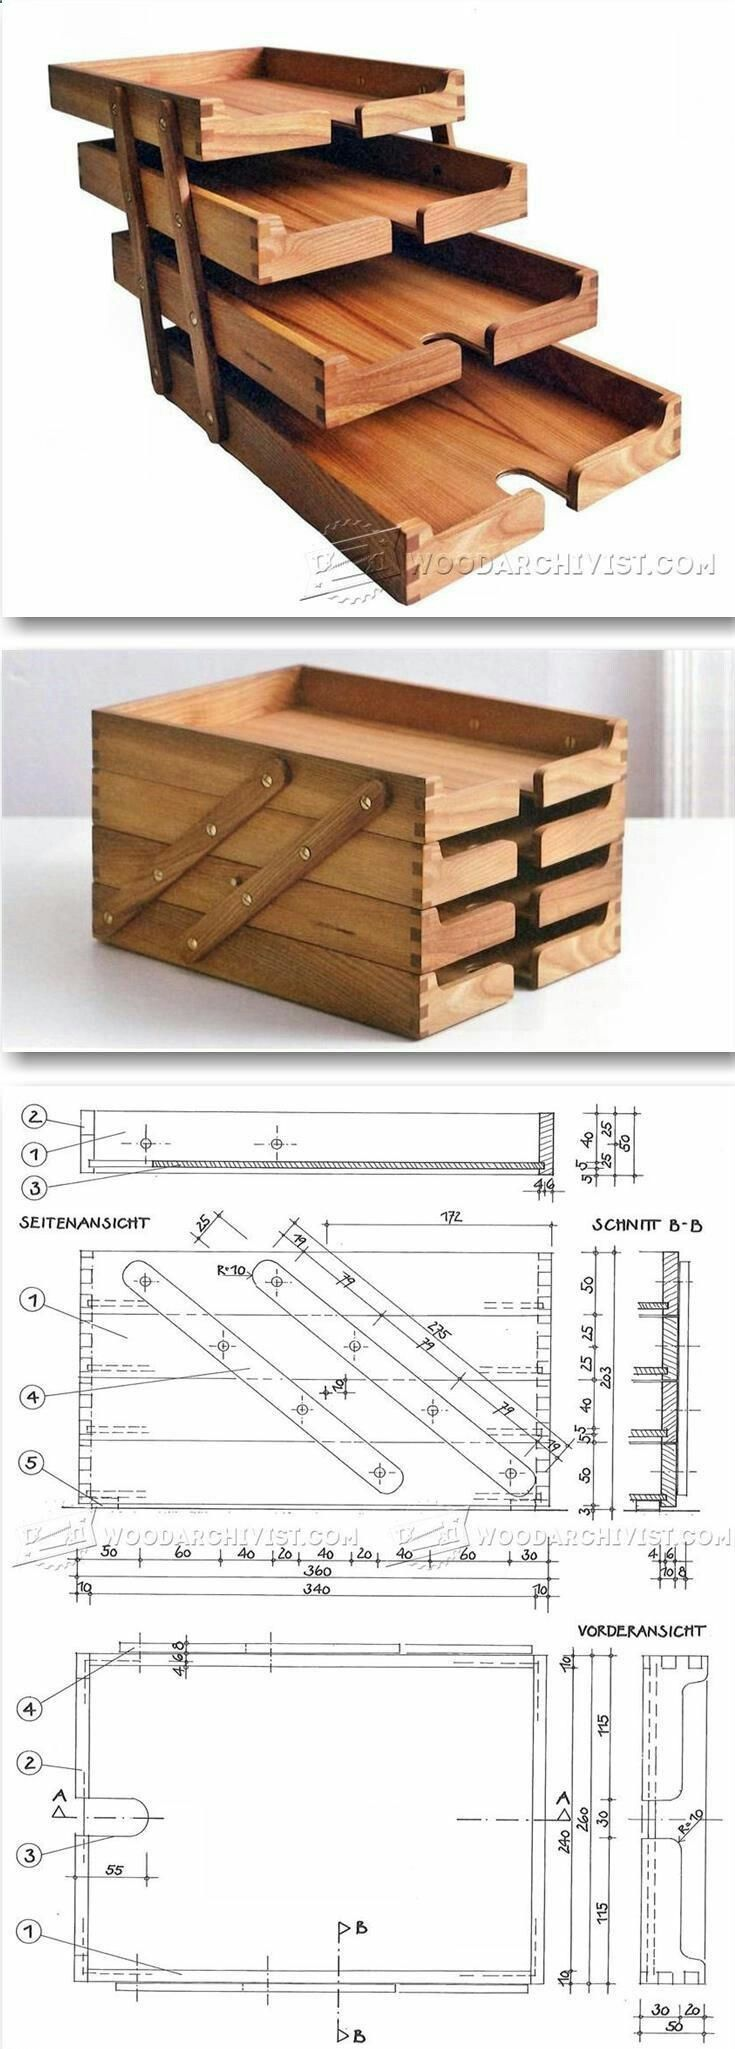 173 Best Woodworking Images On Pinterest Shelving Brackets Origami Dog Diagram Group Picture Image By Tag Keywordpictures Find This Pin And More Eyes Venture